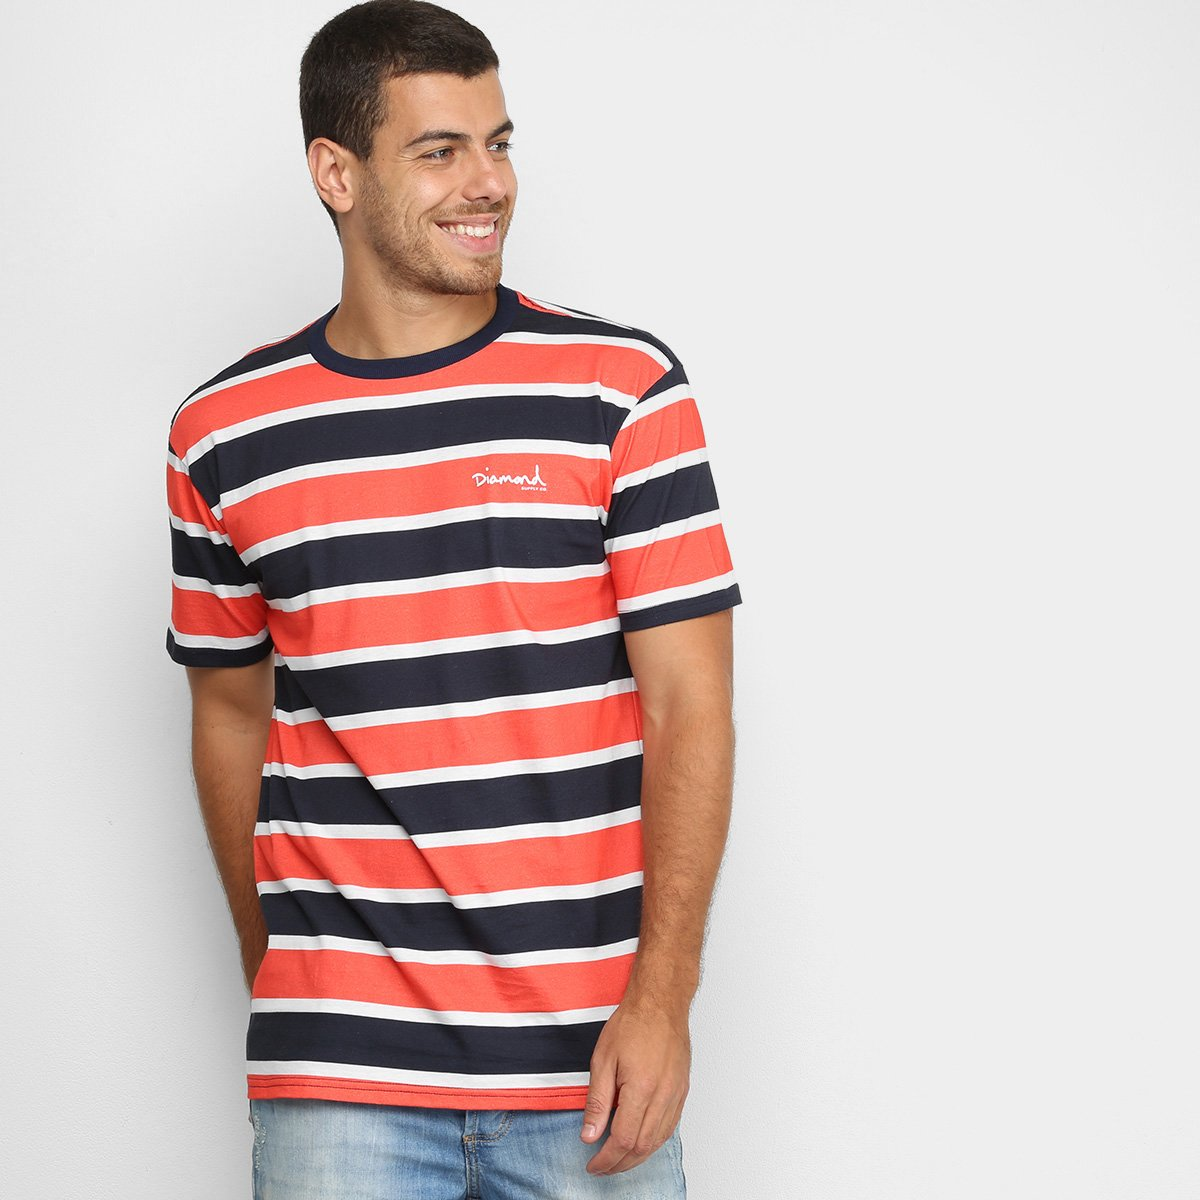 Camiseta Diamond Mini OG Script Striped Tee Masculina